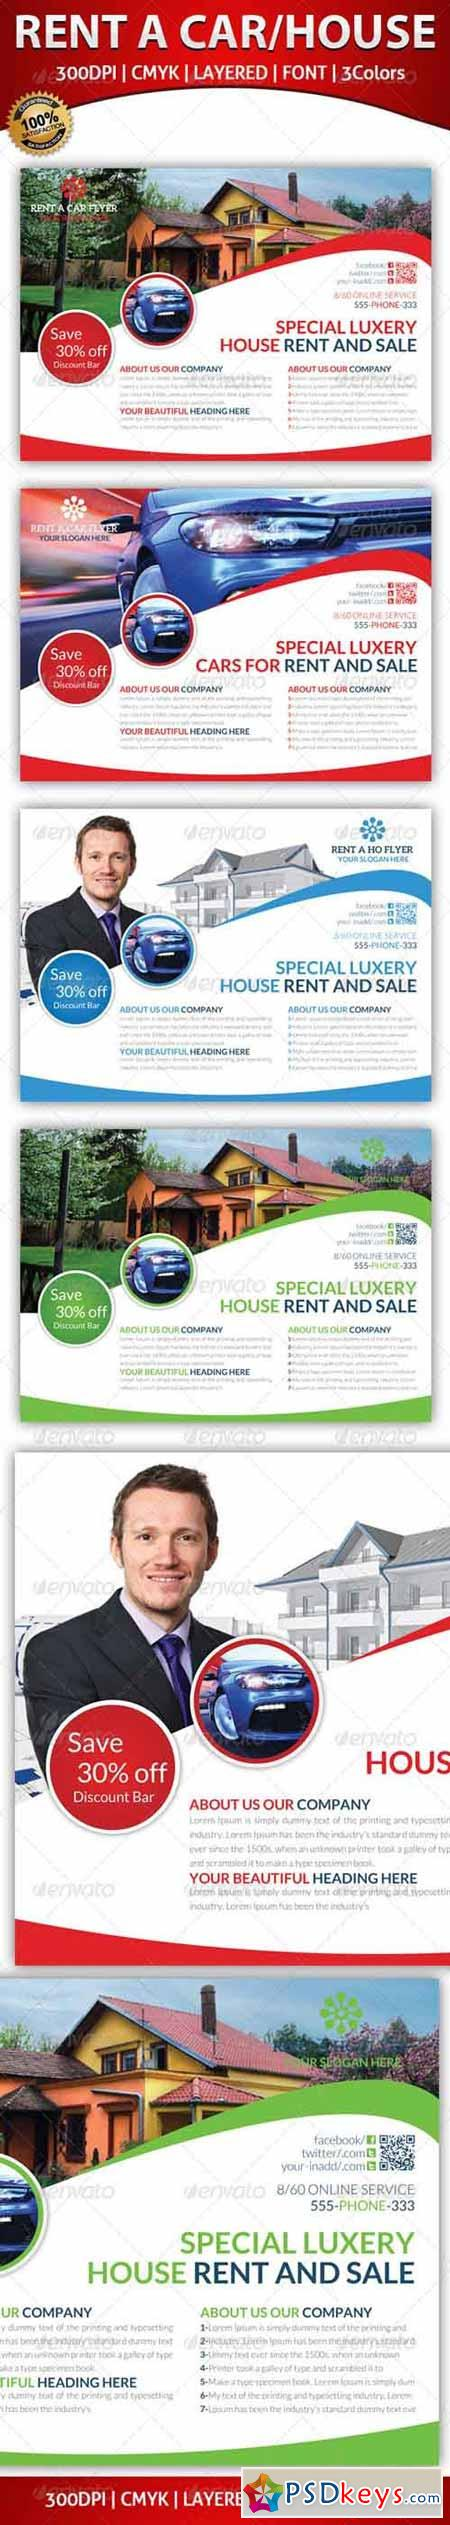 rent a house and car flyer template  rent a house and car flyer template 5934293